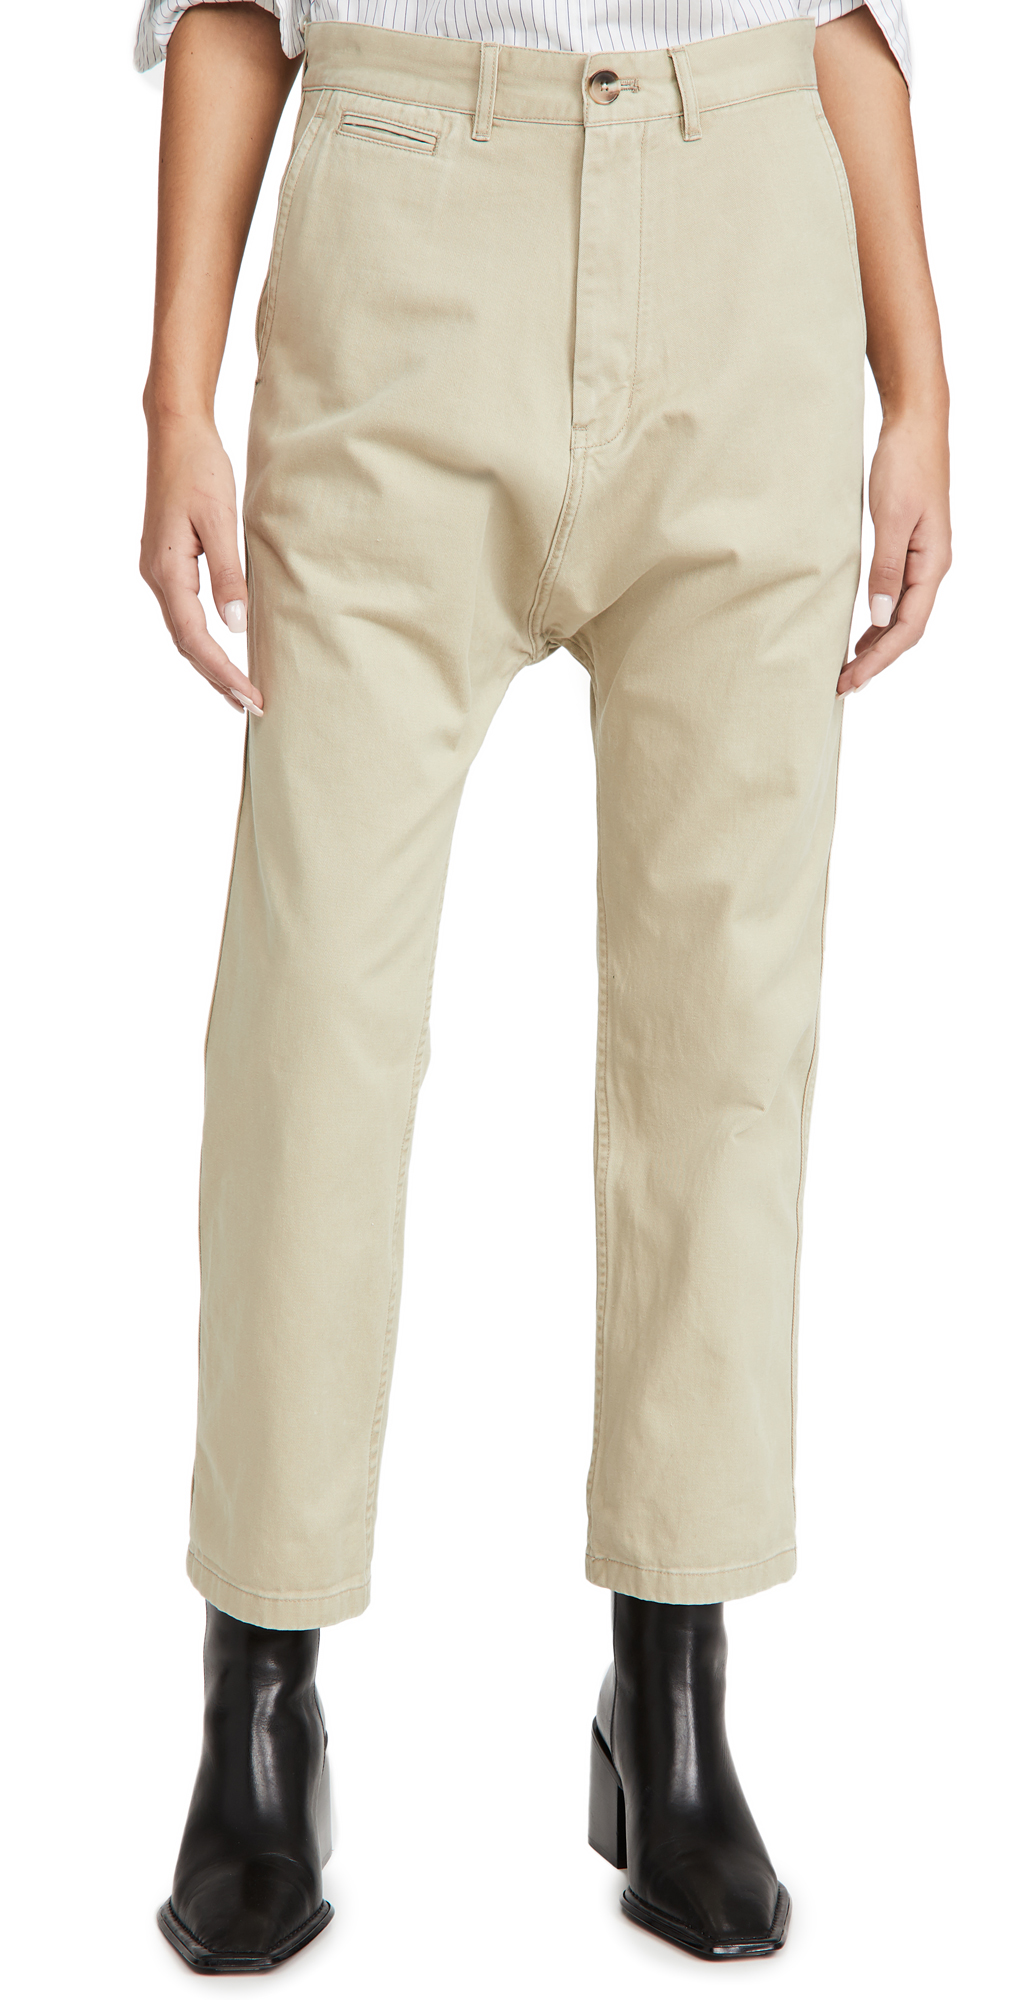 Denimist Chino Drop Pants